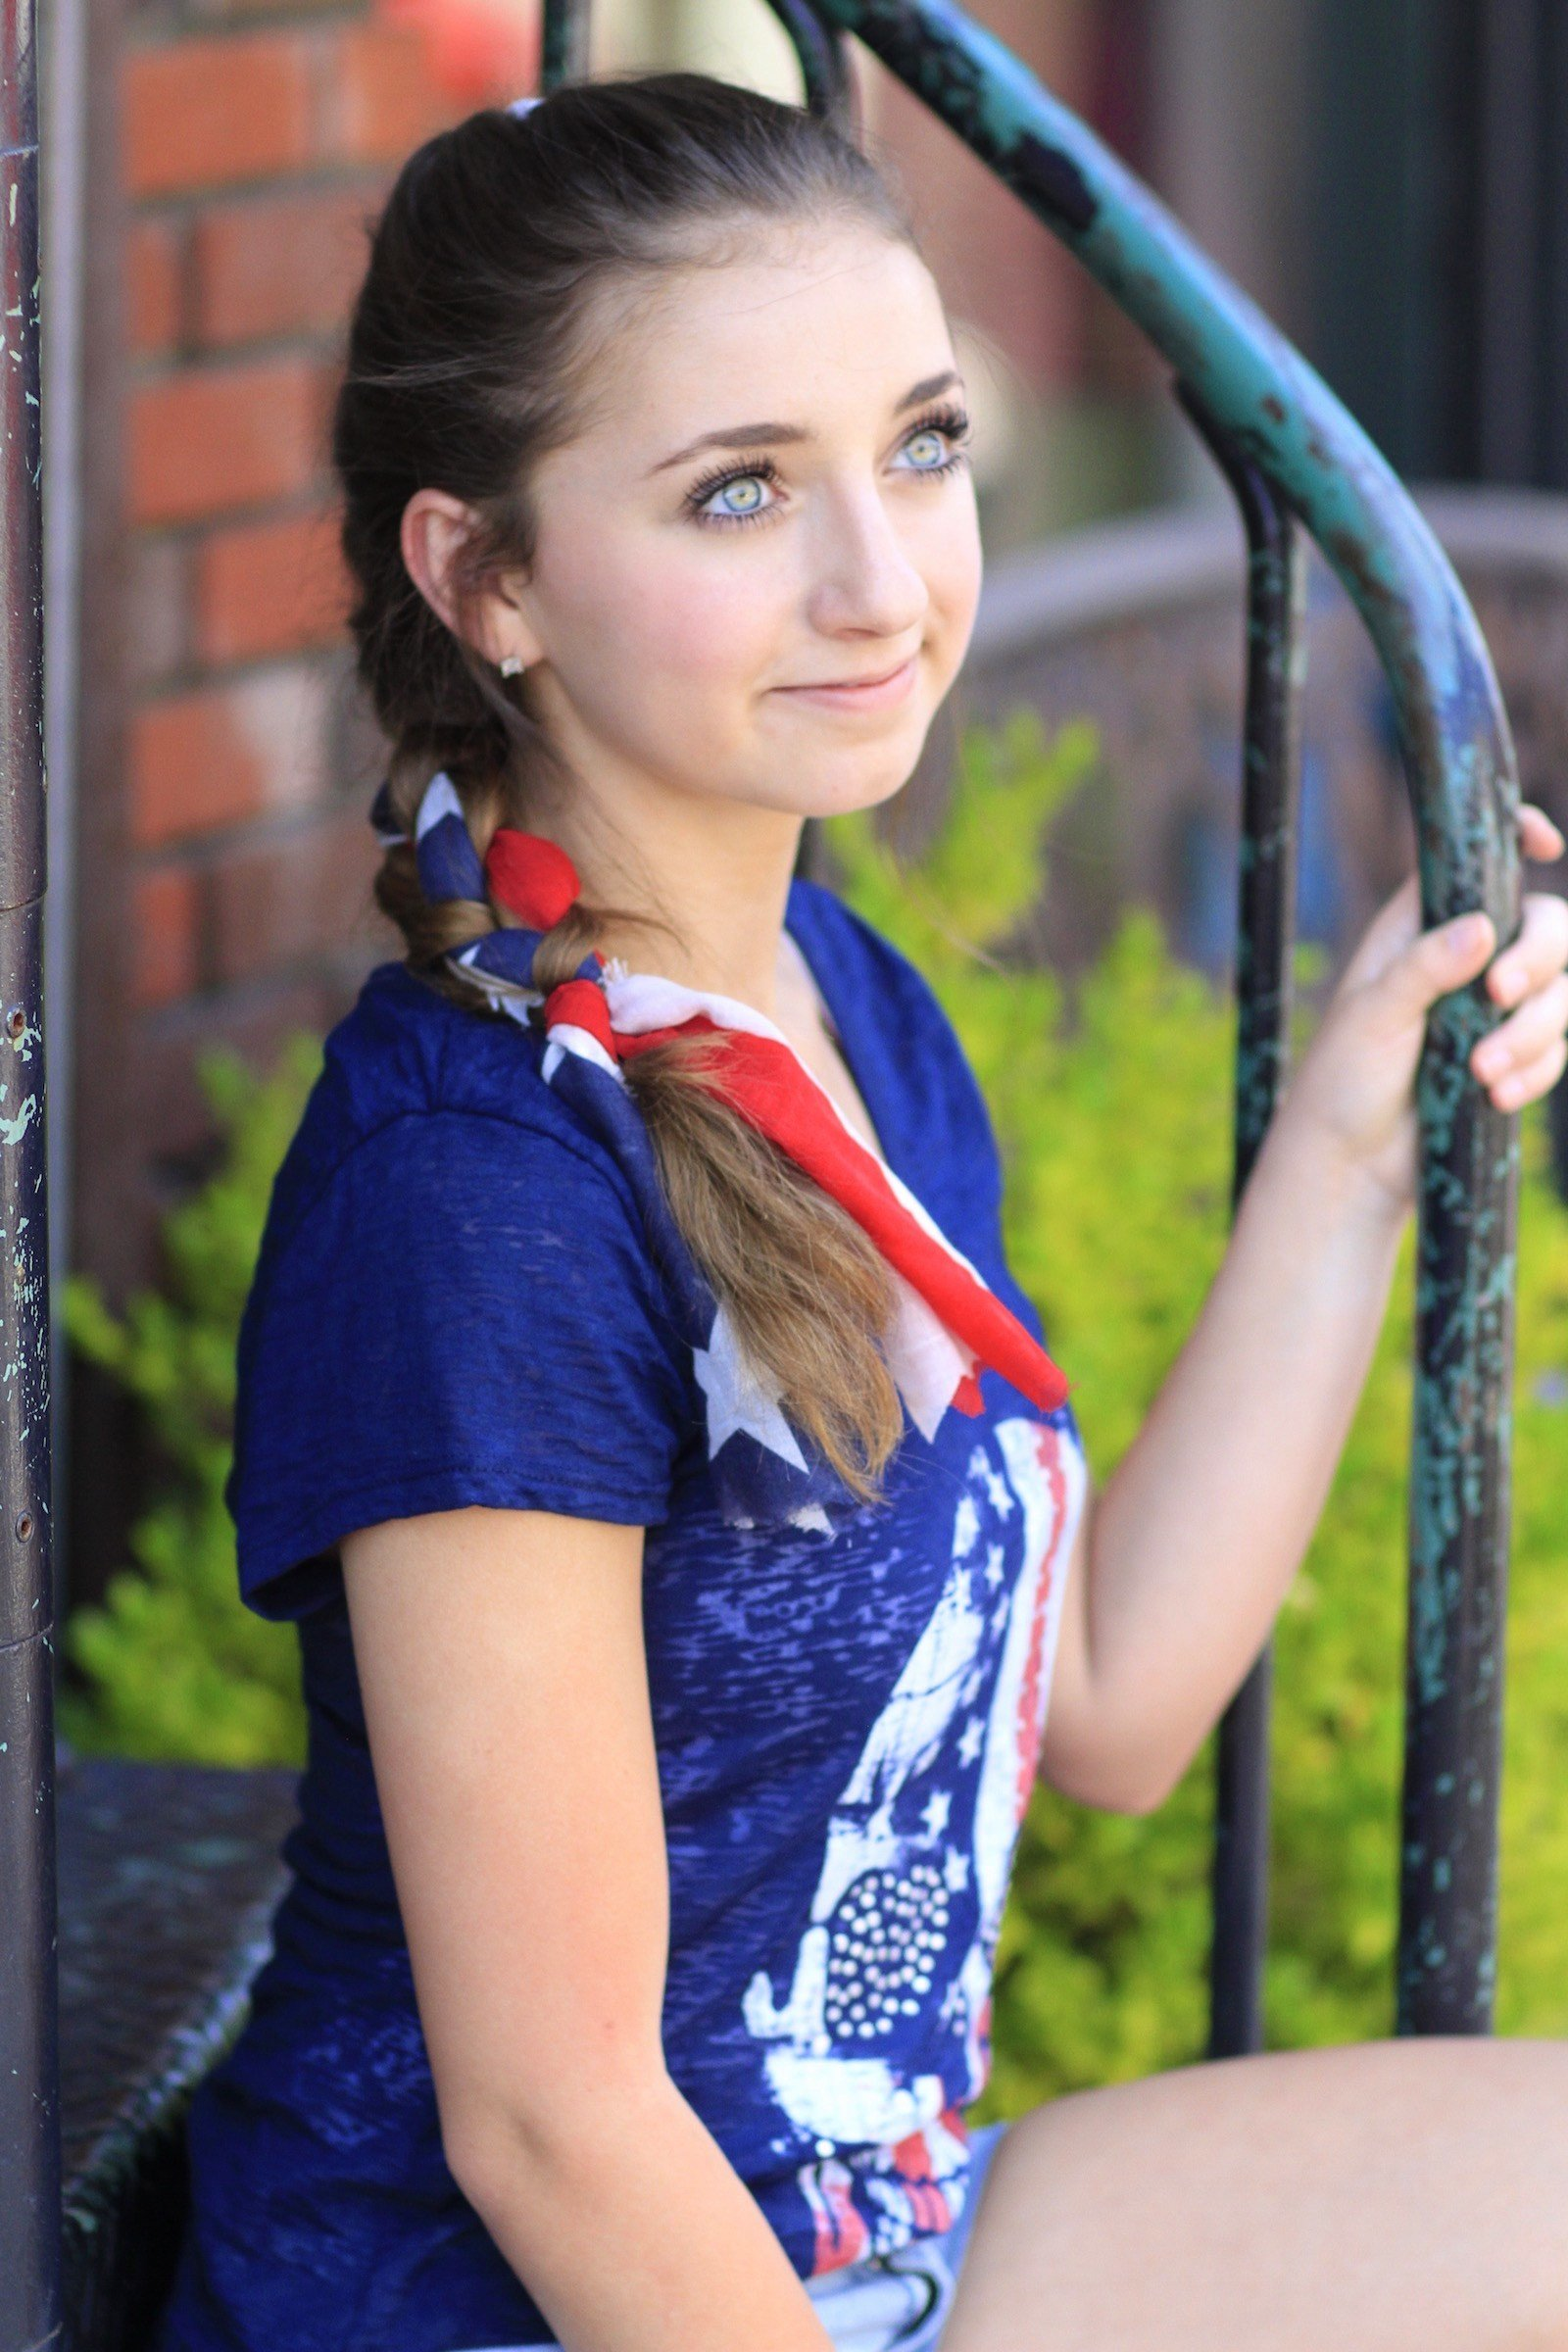 New 3 Minute Scarf Braid 4Th Of July Hairstyles Cute Girls Ideas With Pictures